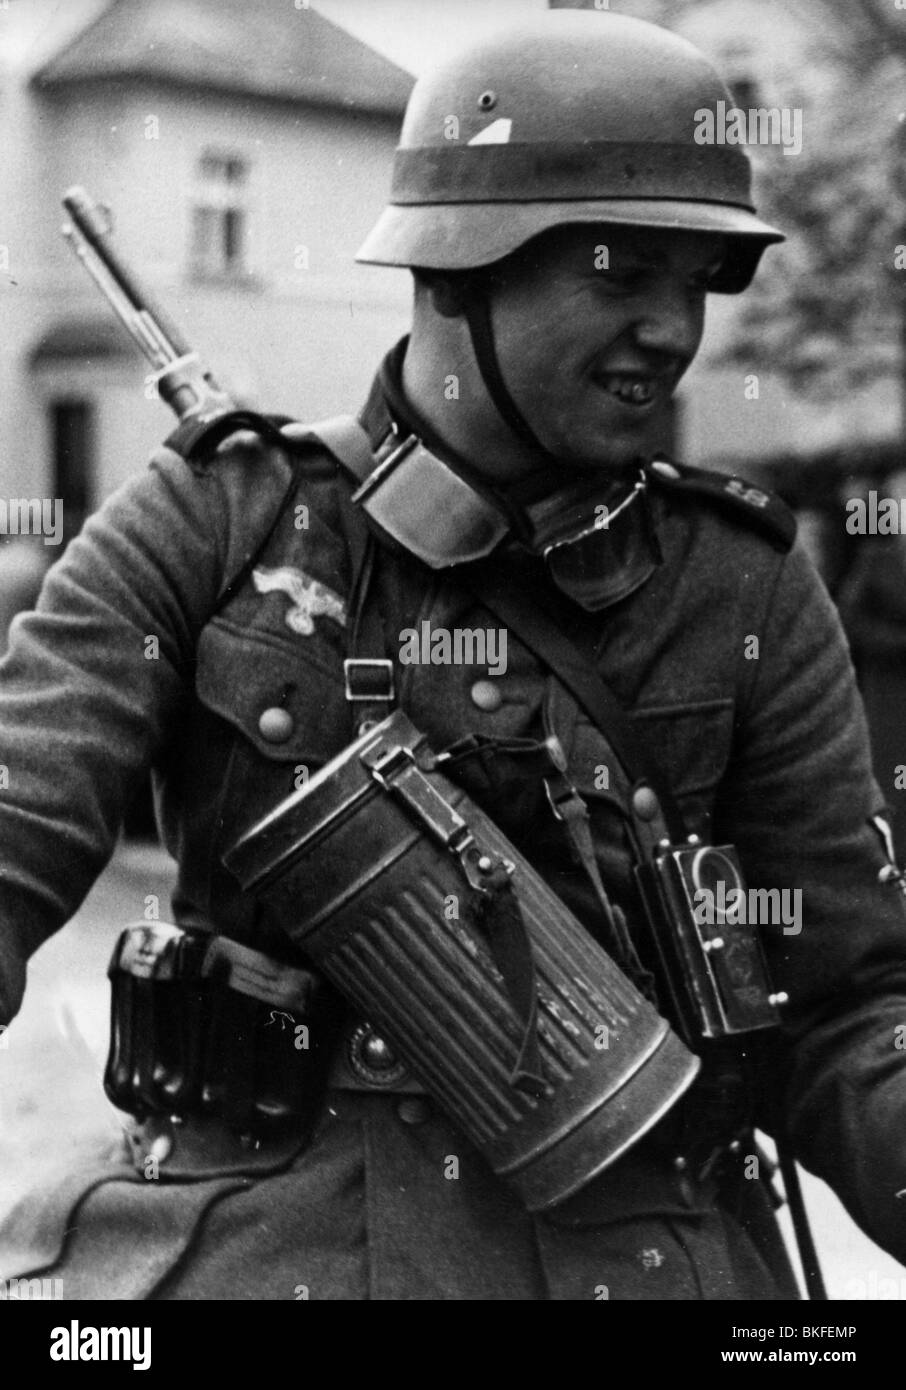 Nazism / National Socialism, military, German mountain troops during